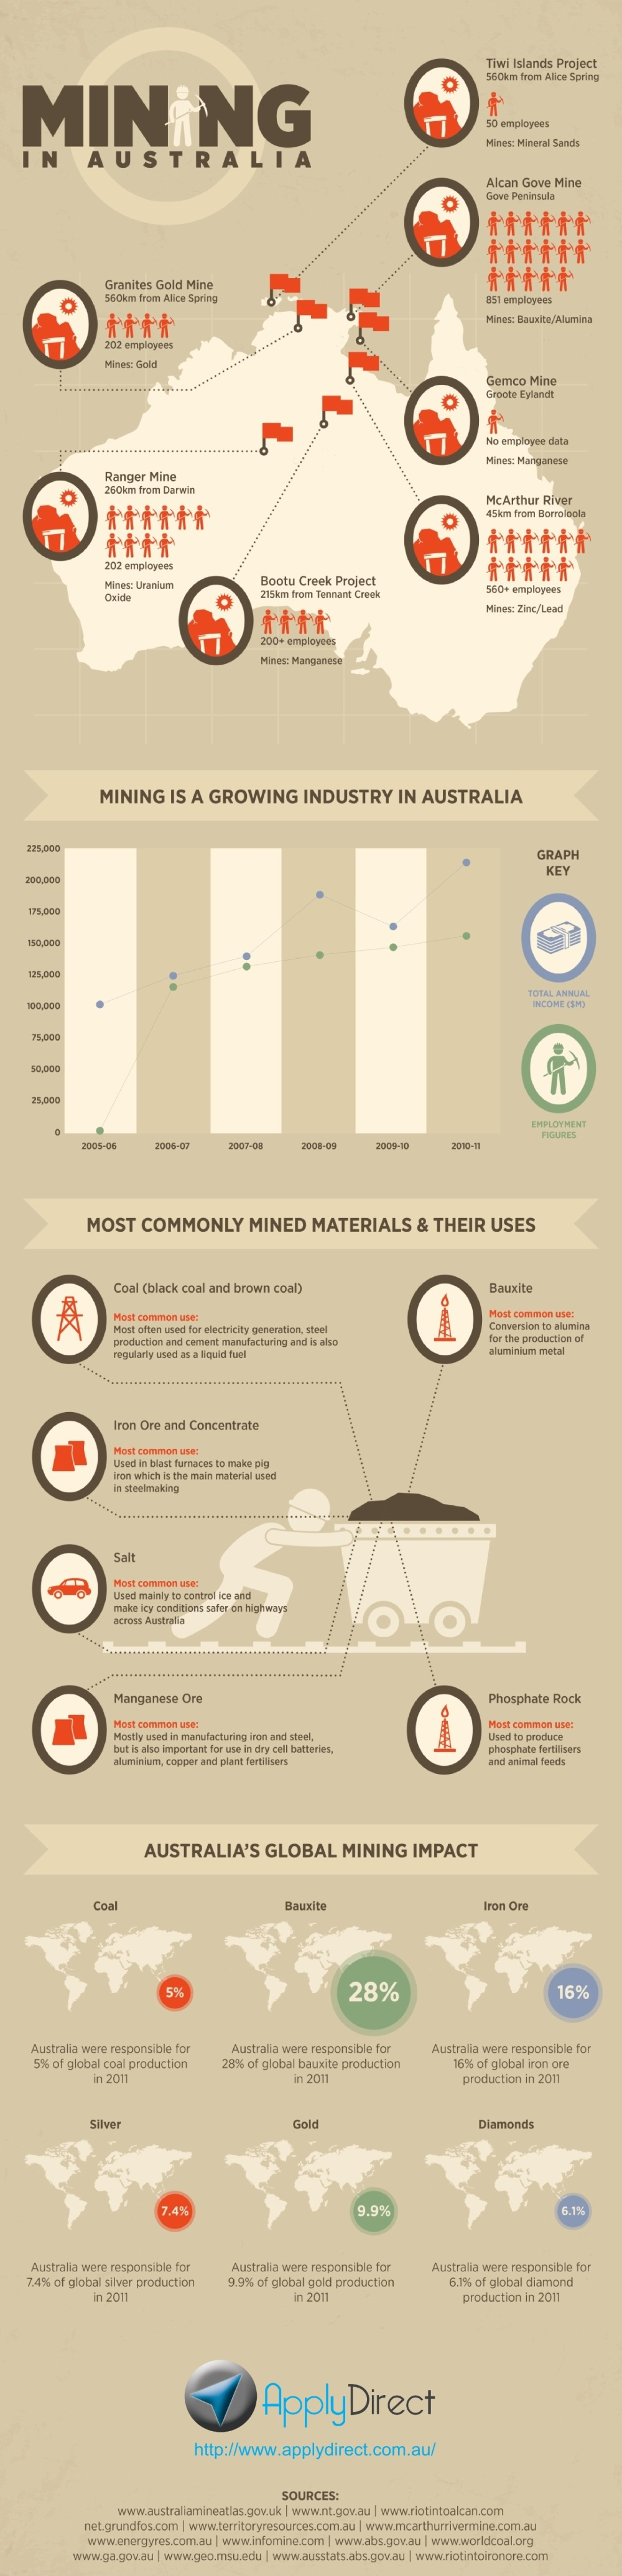 Australian Mining Industry-Infographic